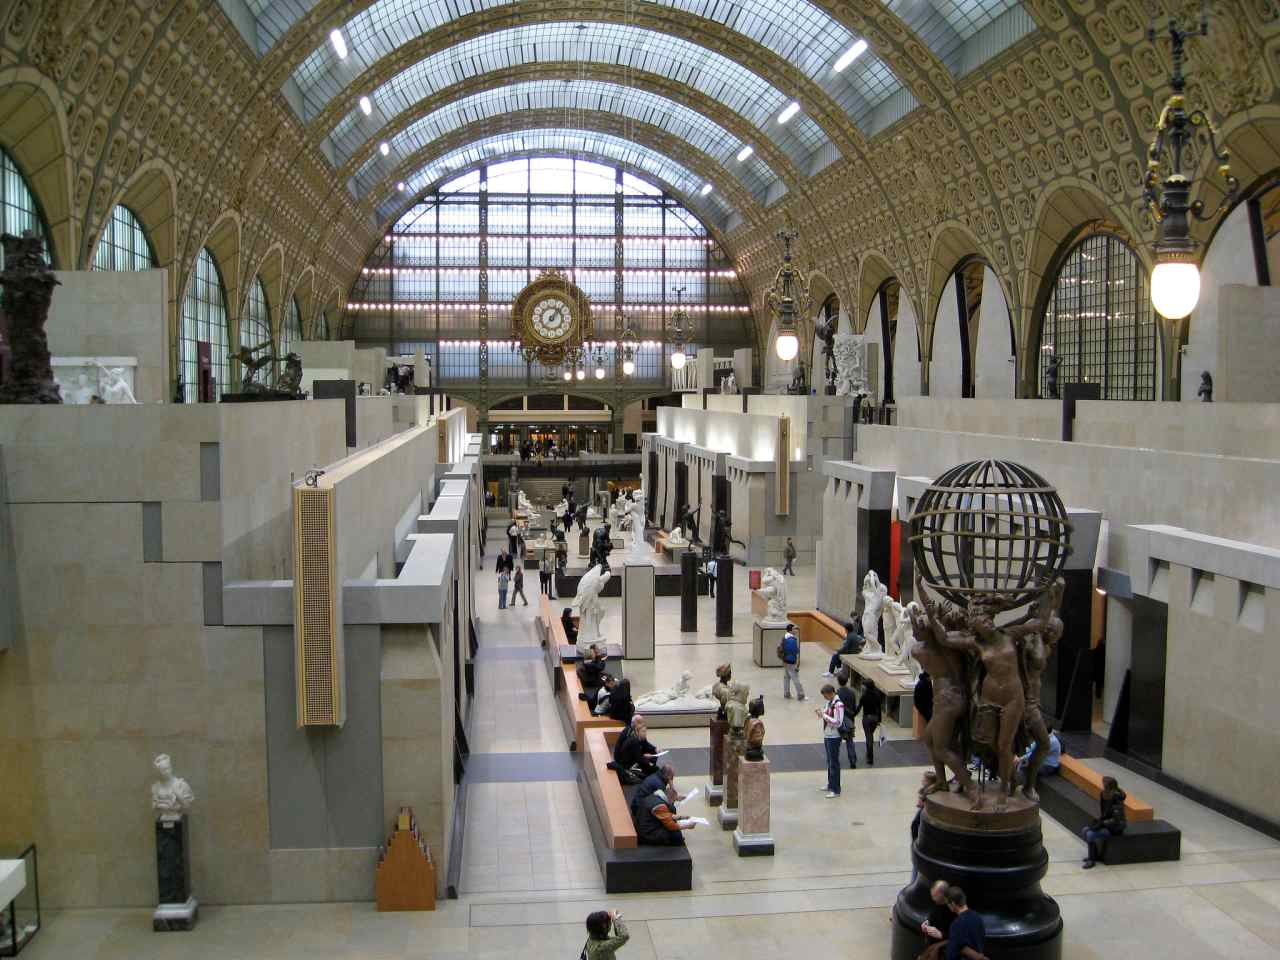 The Musée d'Orsay, Top tourist attractions in Paris